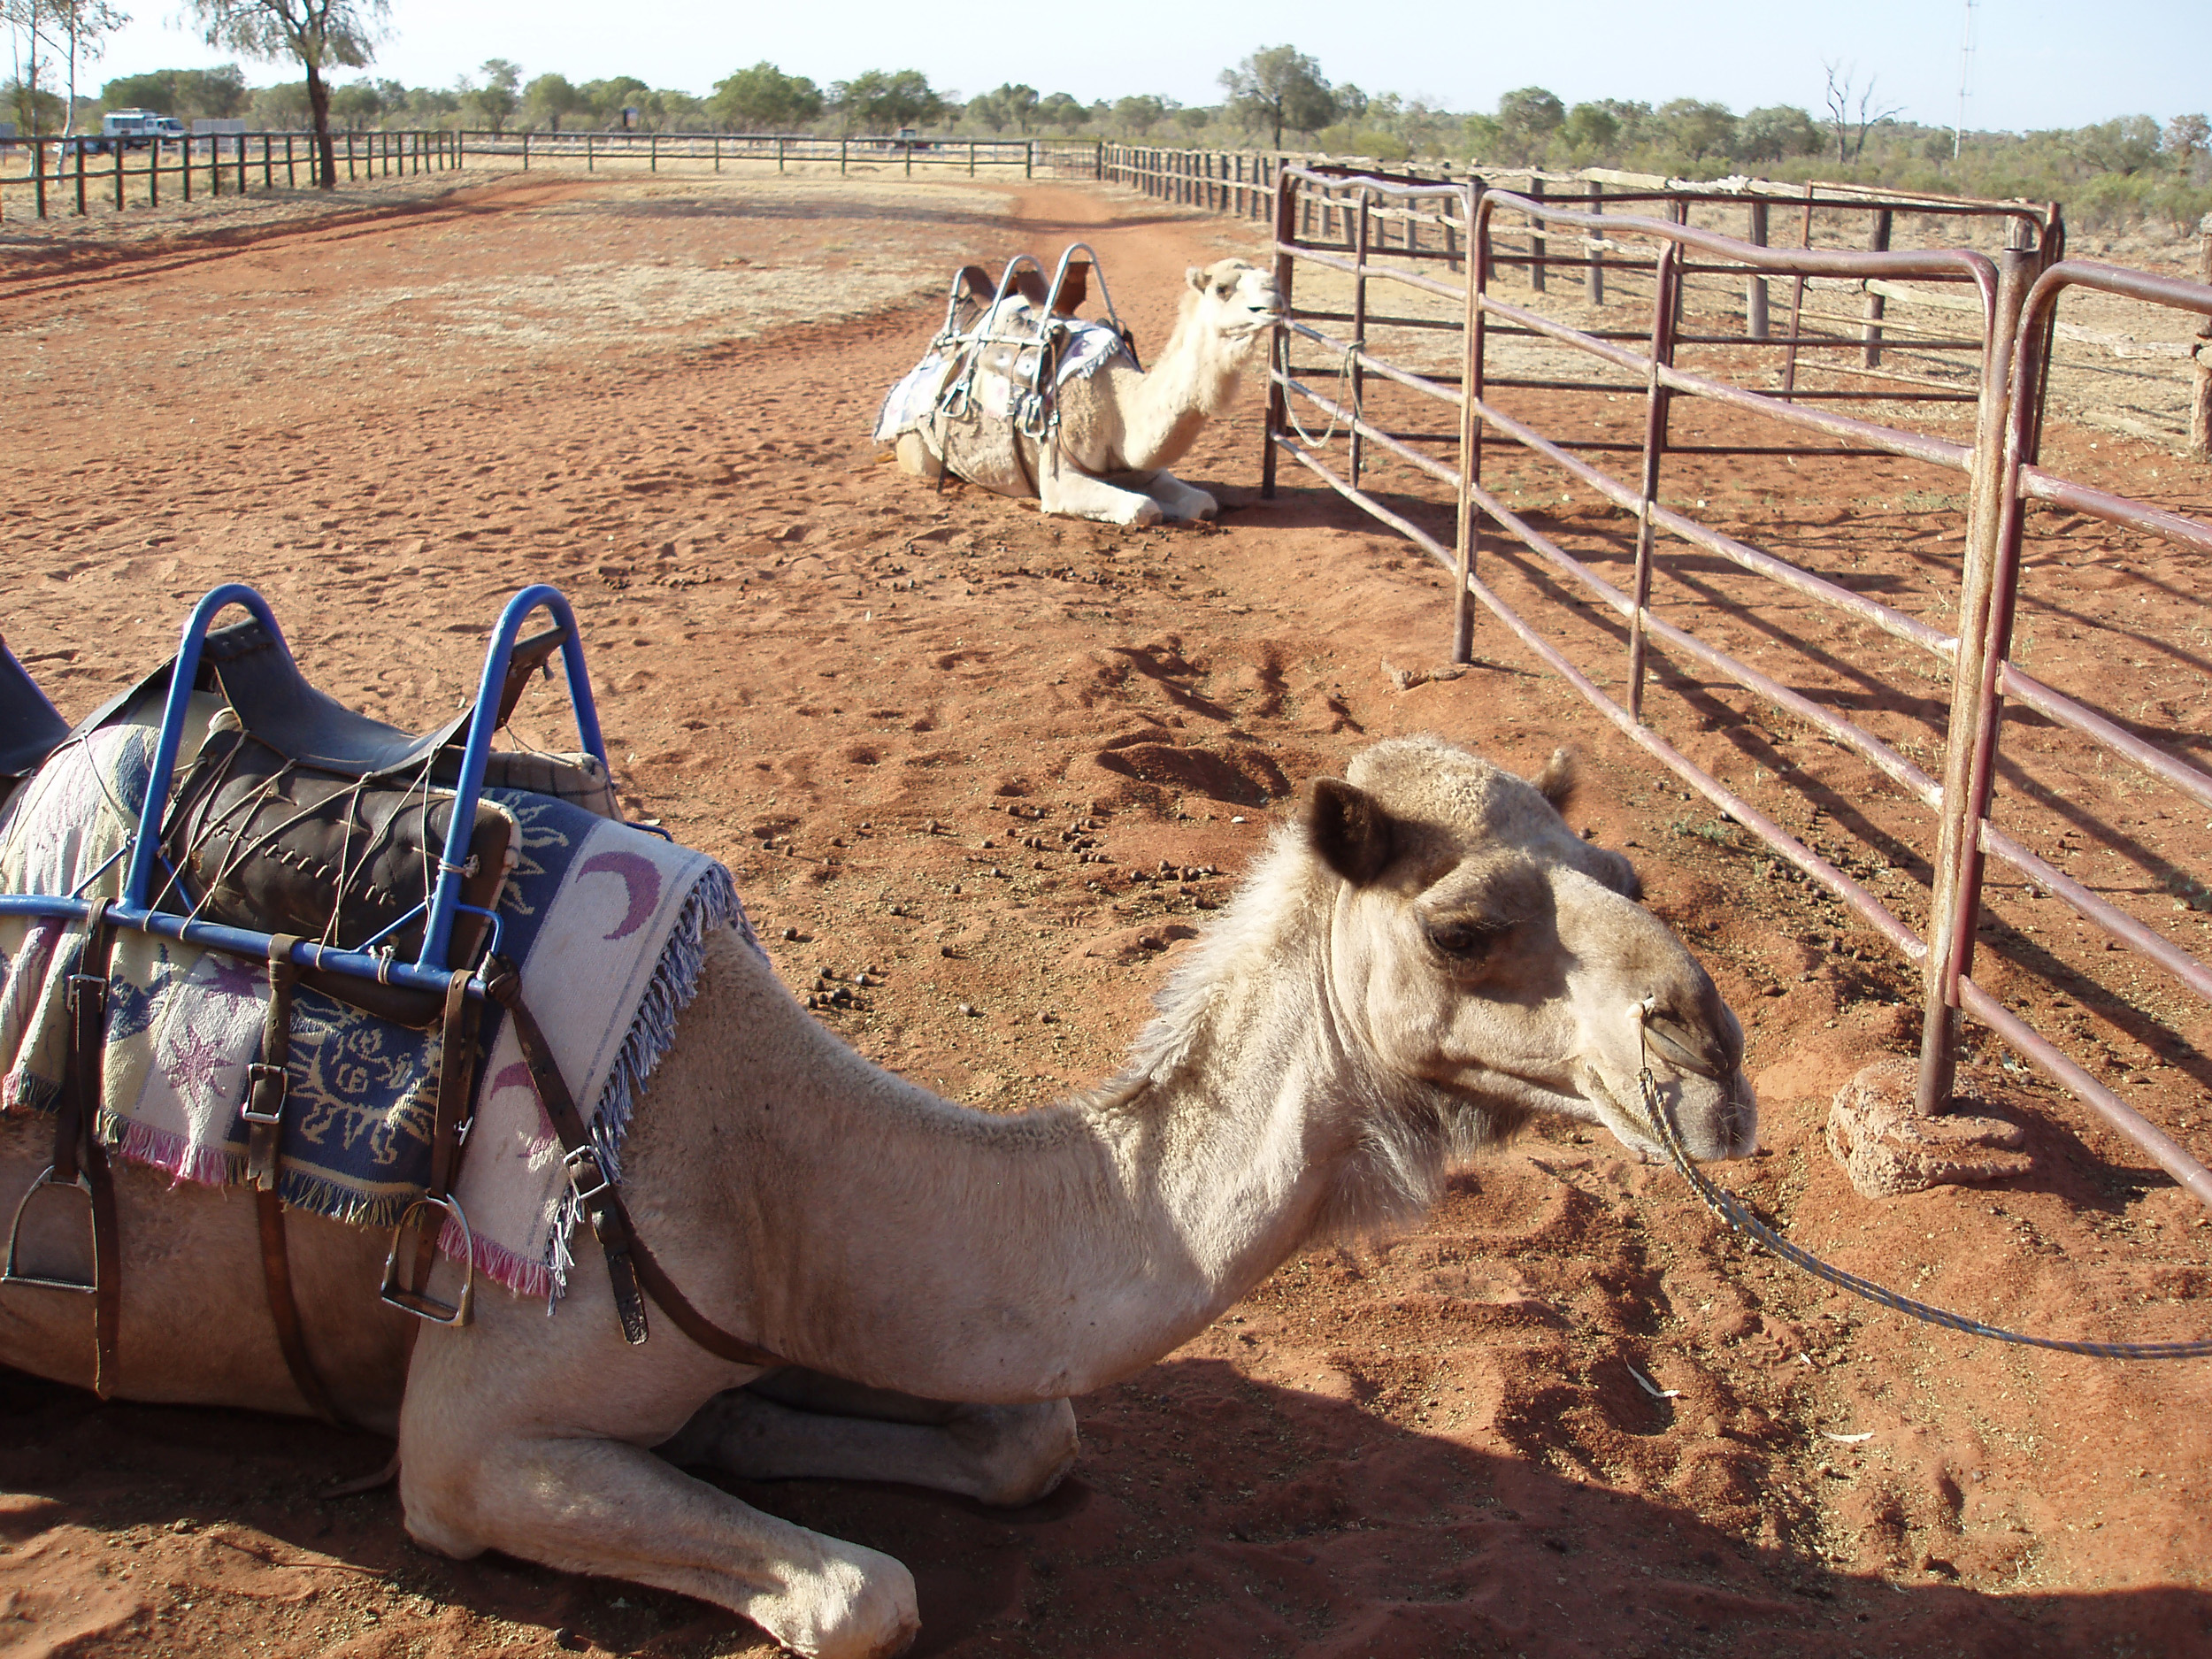 camel rides are a popular tourist attraction in the northern territory